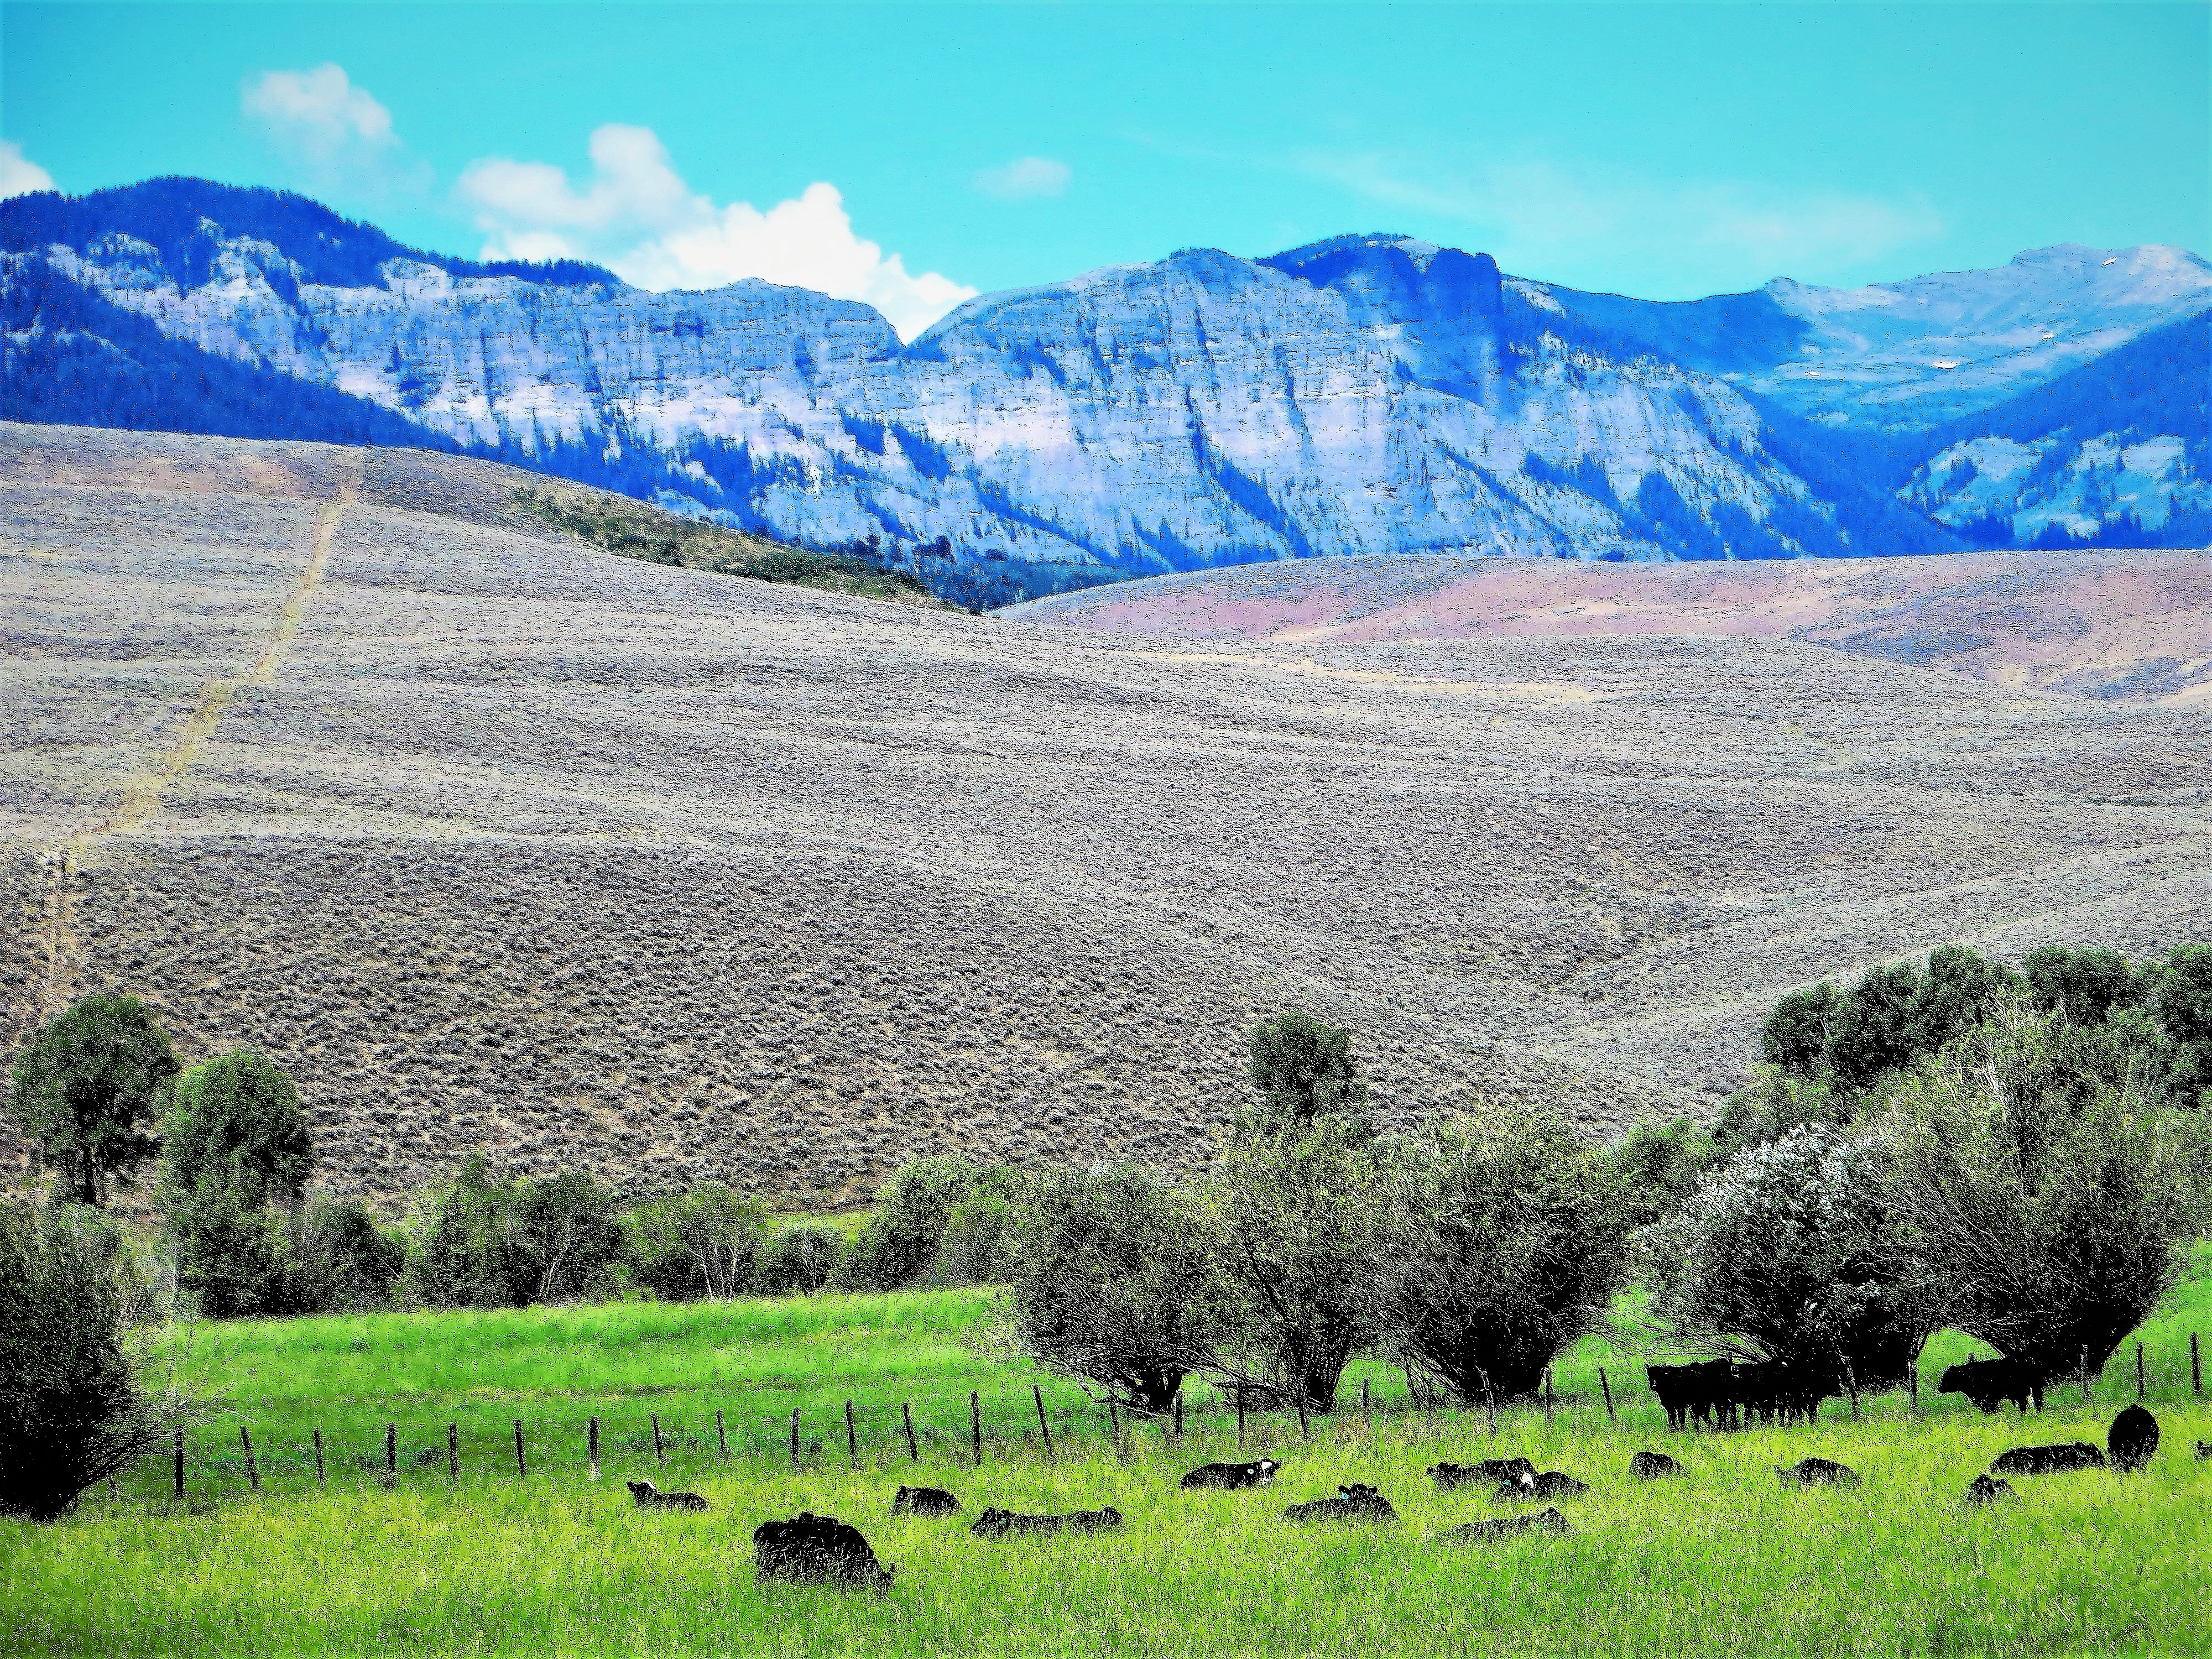 Click image for larger version  Name:Mountain Cattle.JPG Views:11 Size:7.15 MB ID:11873